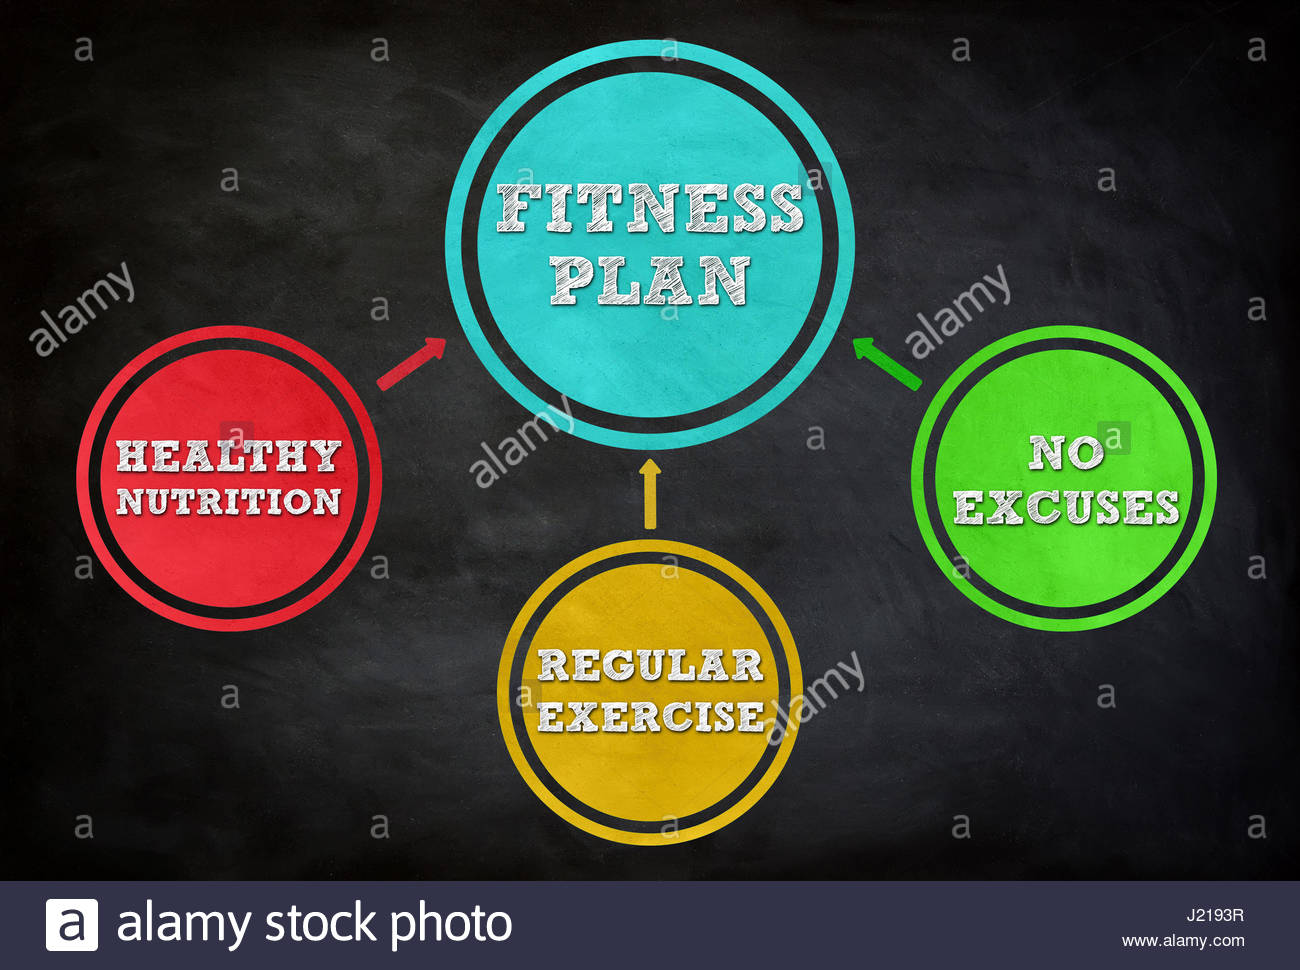 Fitness Plan - important virtues - Stock Image